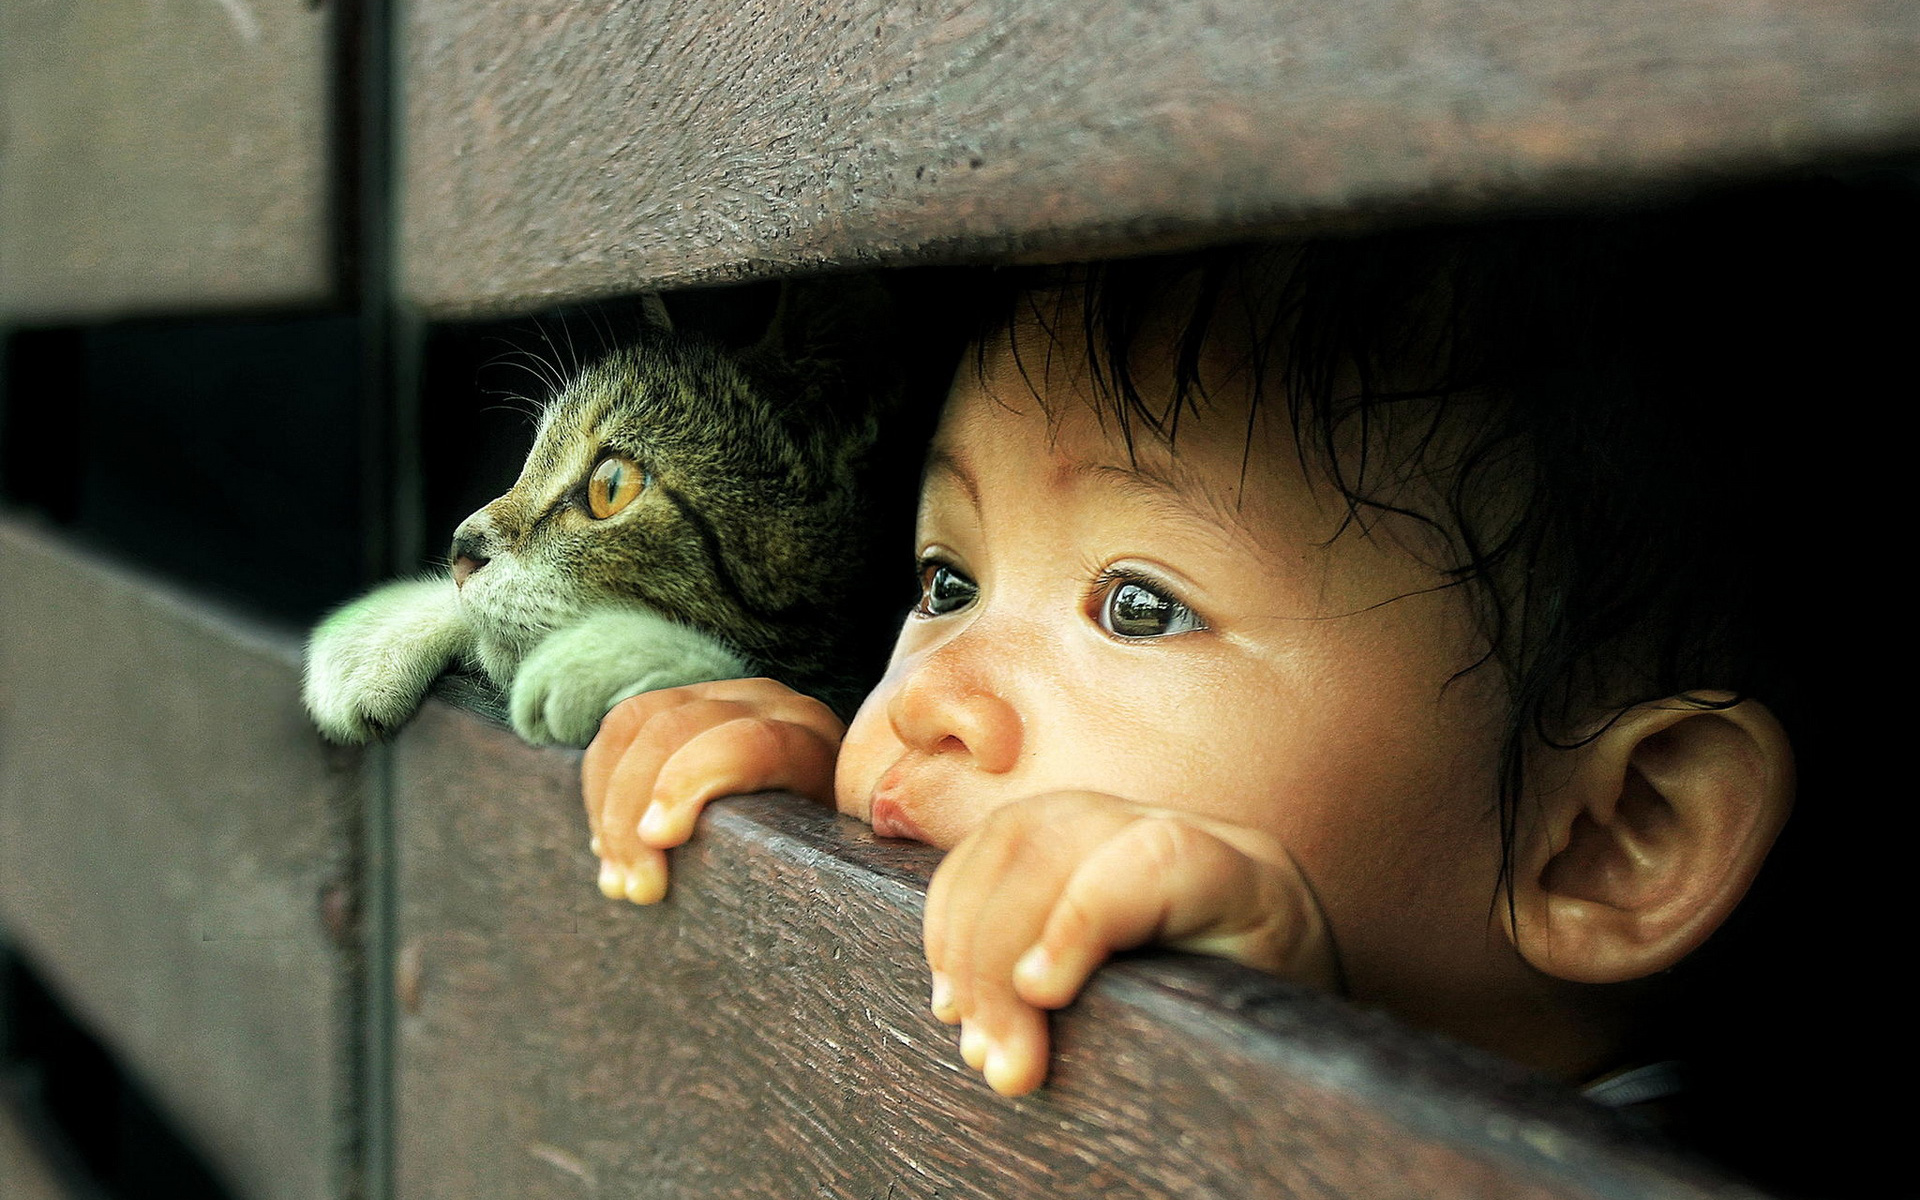 photography-admirable-photography-animal-baby-also-human-baby-in-cat-and-kid-peeking-hd-wallpapers-widescreen-wallpapers-animal-photography-cats-peek-re